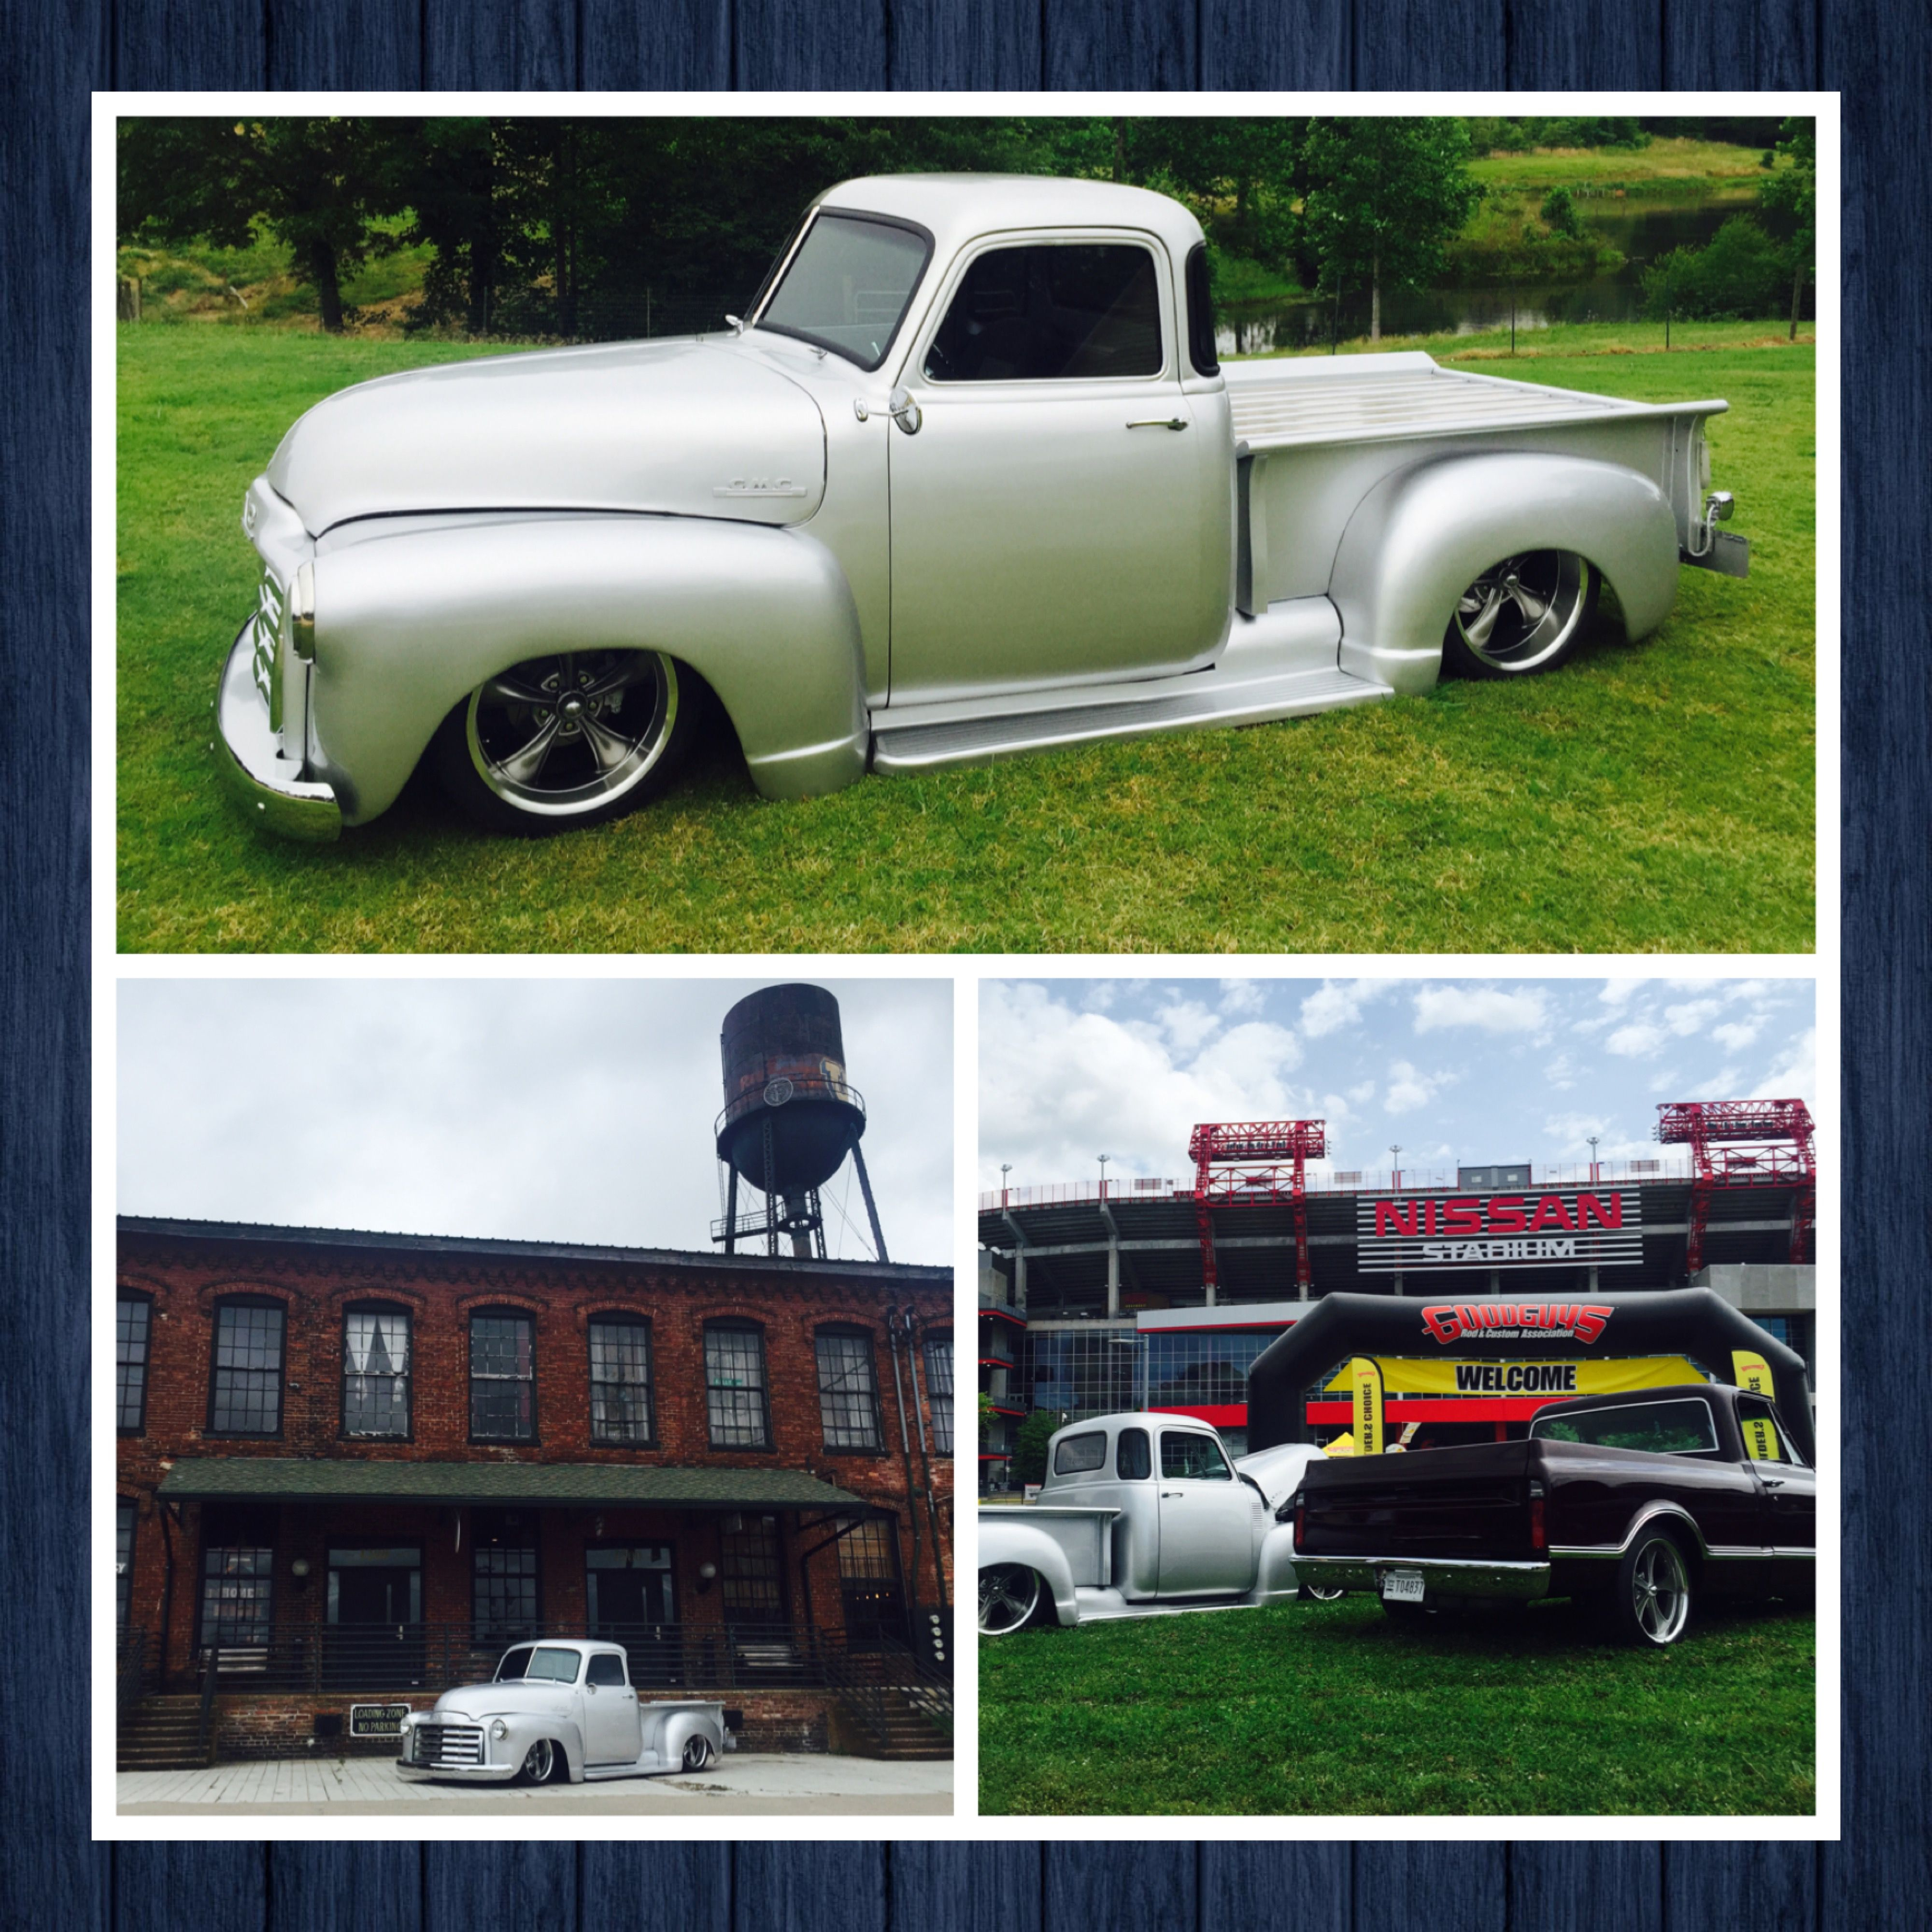 52 Gmc Stephen Cantrell Hot Rods Build Authorized Ridler Dealer